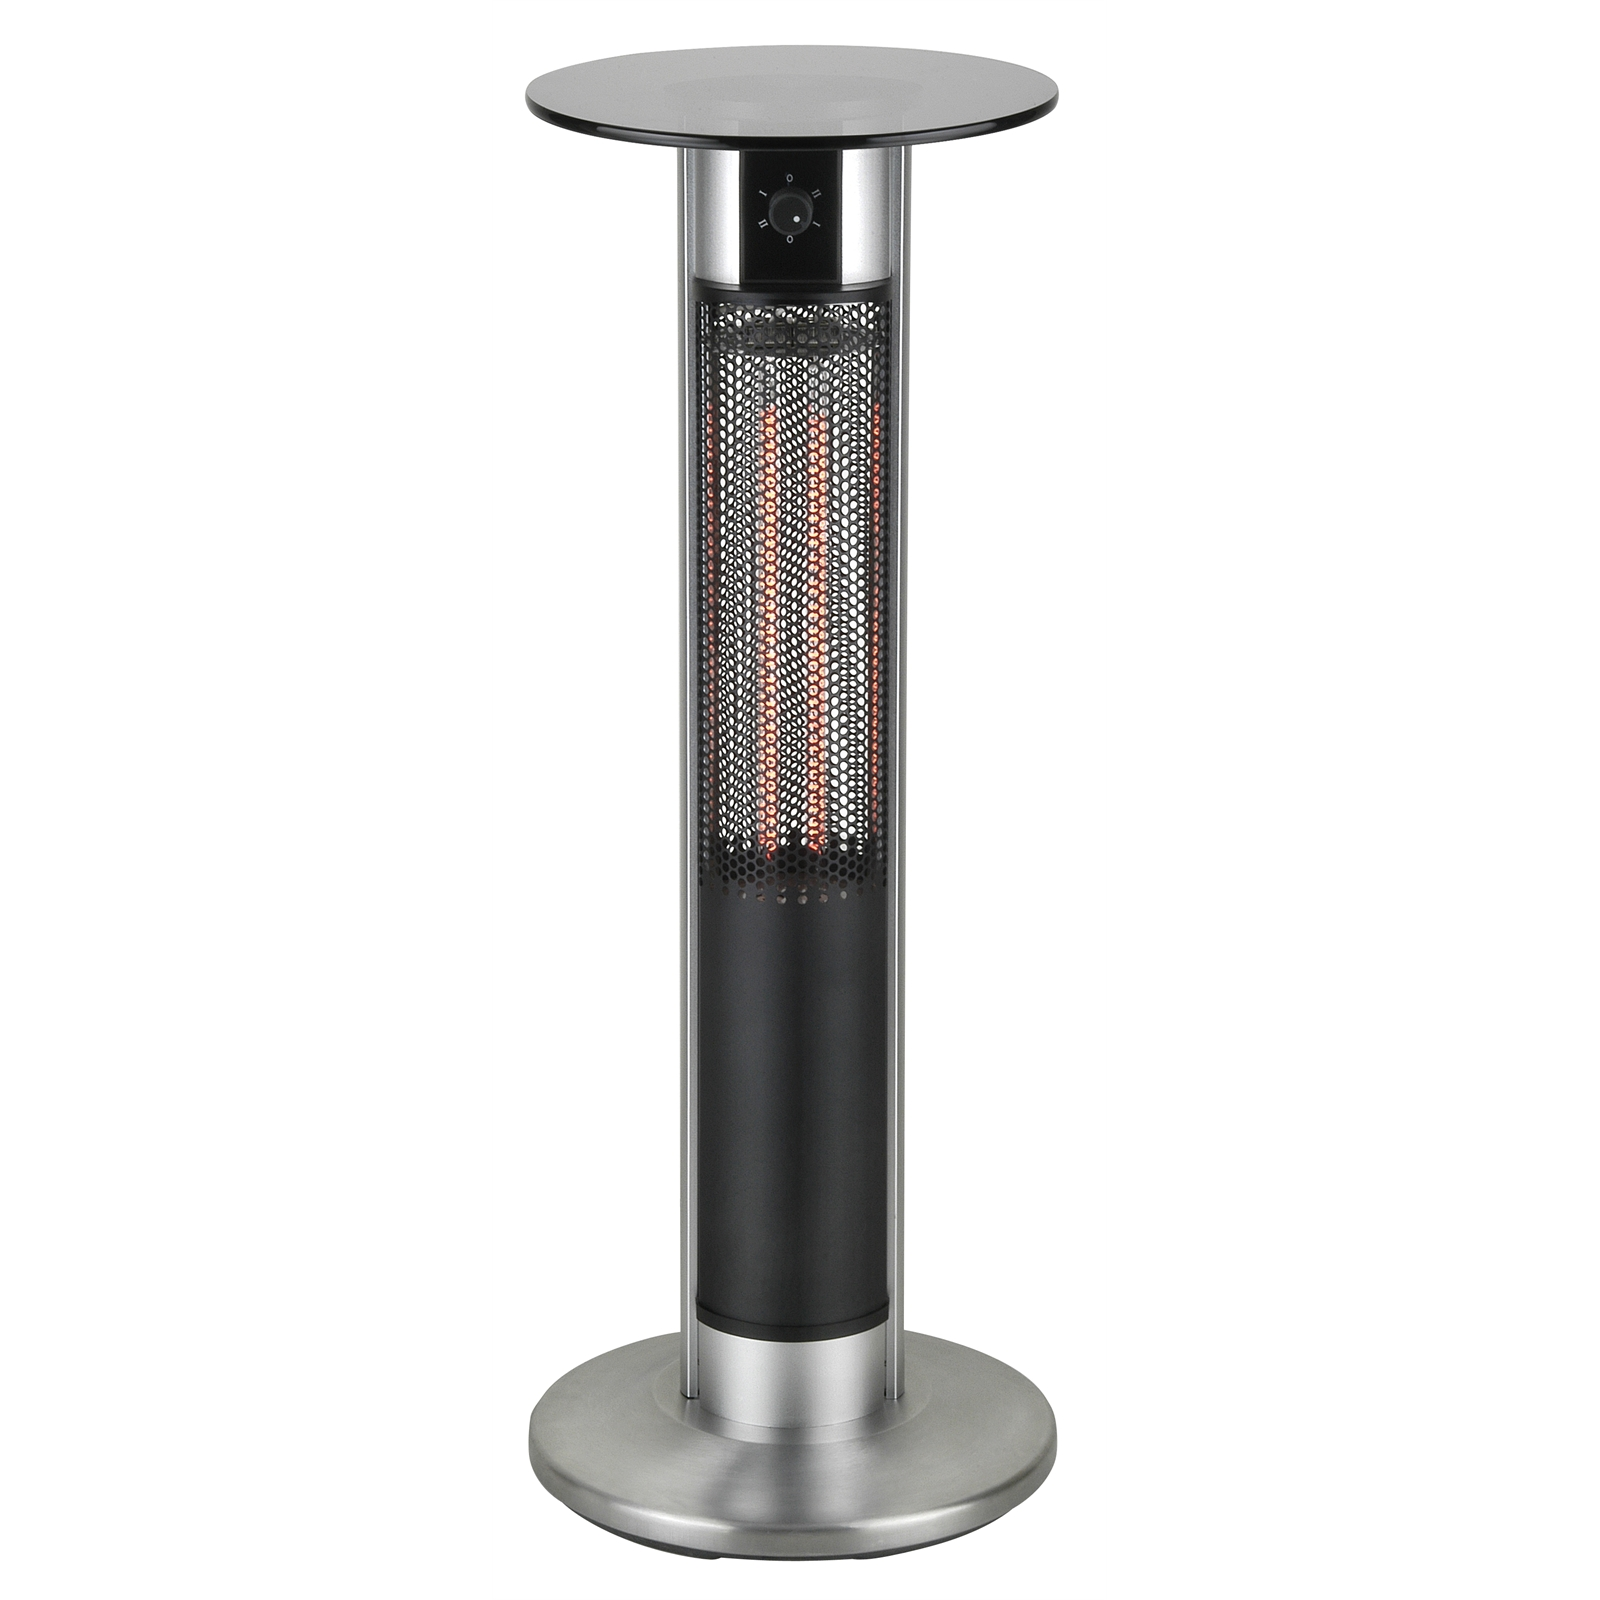 Patio 360 Electric Table Top Heater Small Airxpress Hire